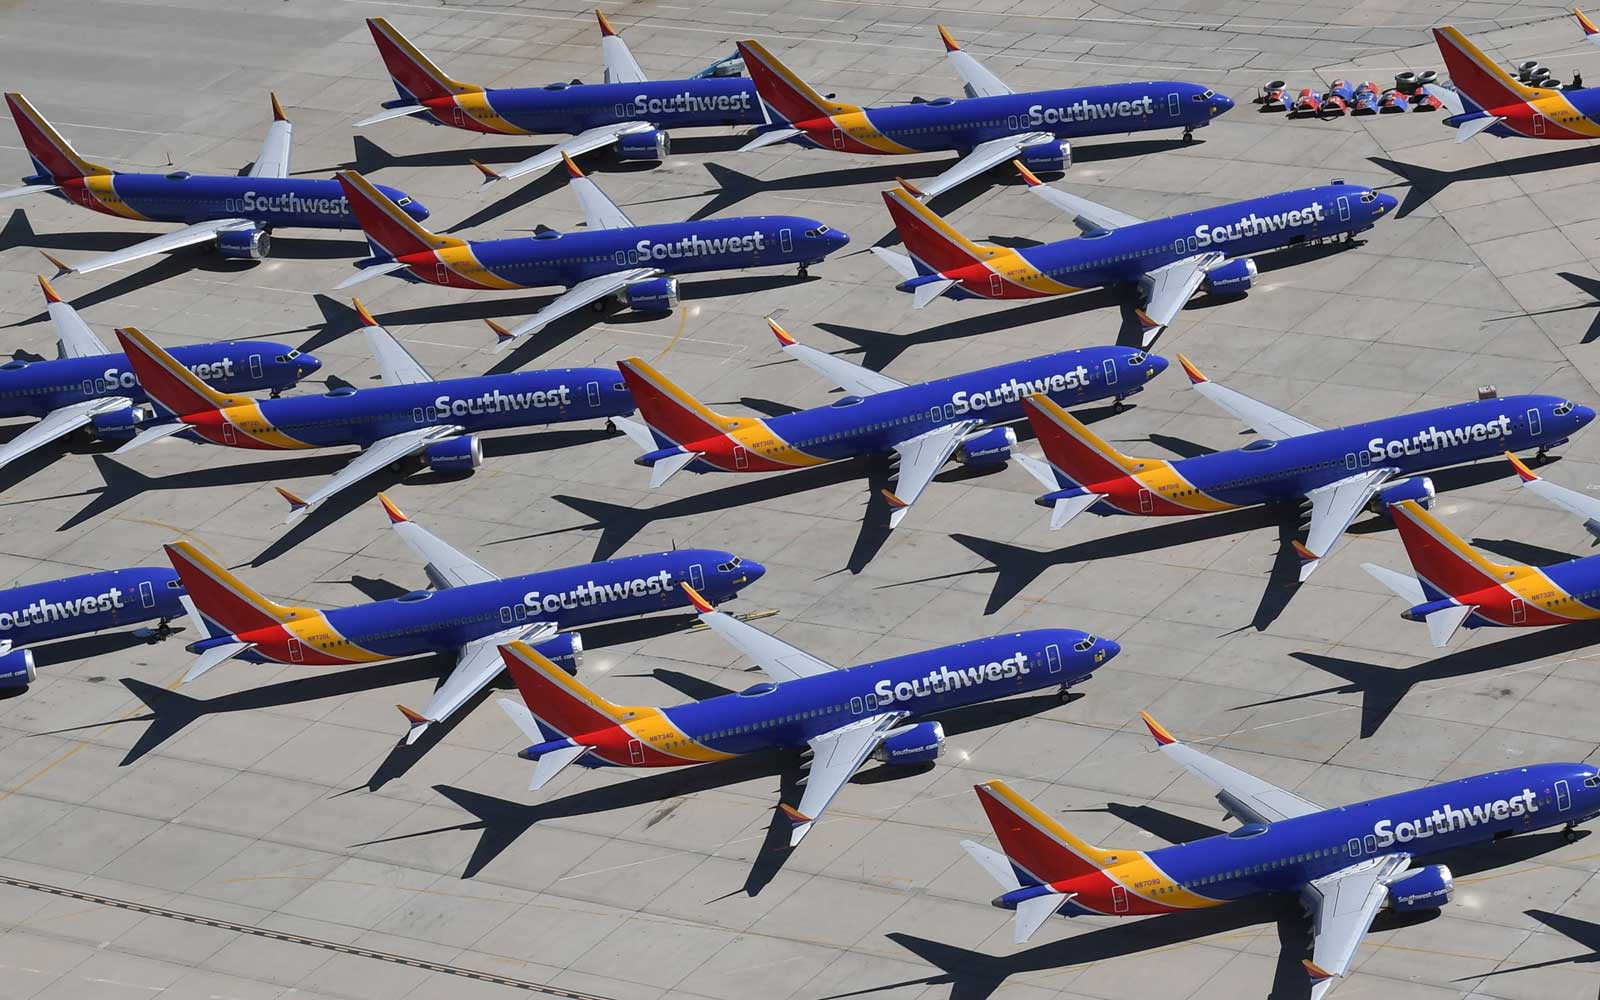 Spring Break Travelers on Southwest May Be Impacted by the Grounding of the 737 MAX